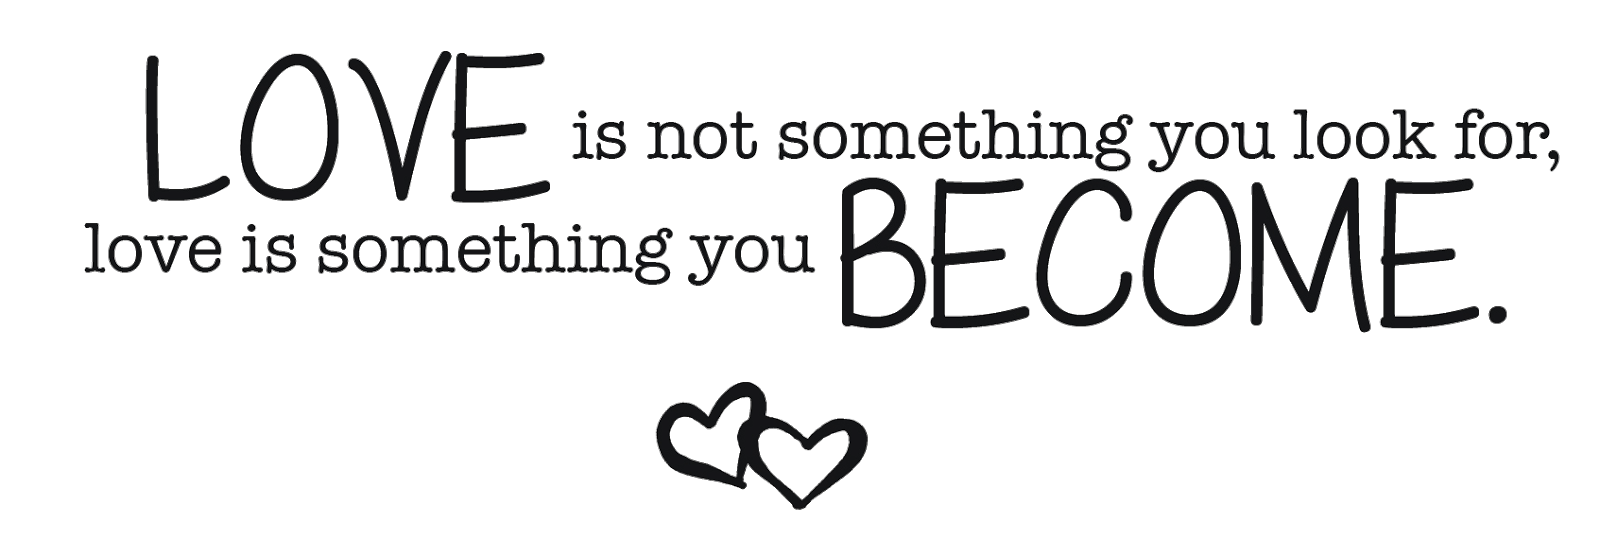 Love Quotes Love Quotes Png Transparent Love Quotes Images Pluspng